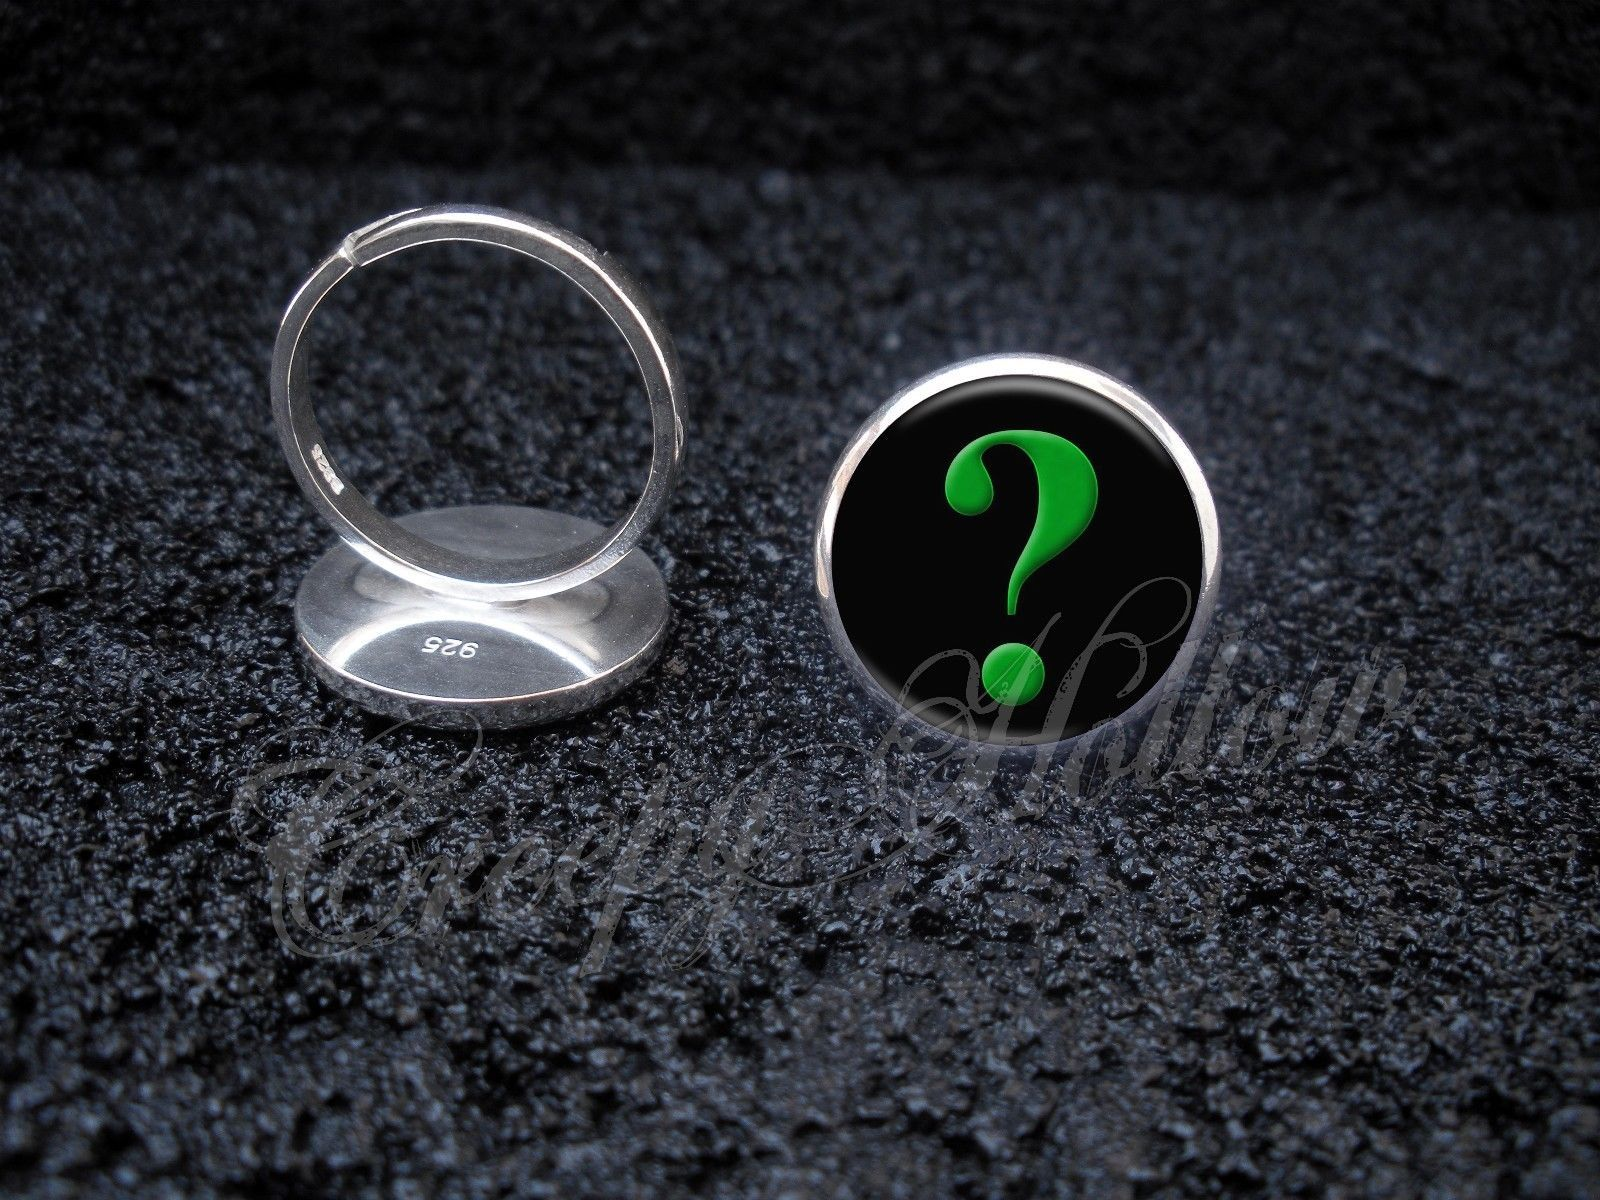 Primary image for 925 Sterling Silver Adjustable Ring Green Question Mark Interrogative